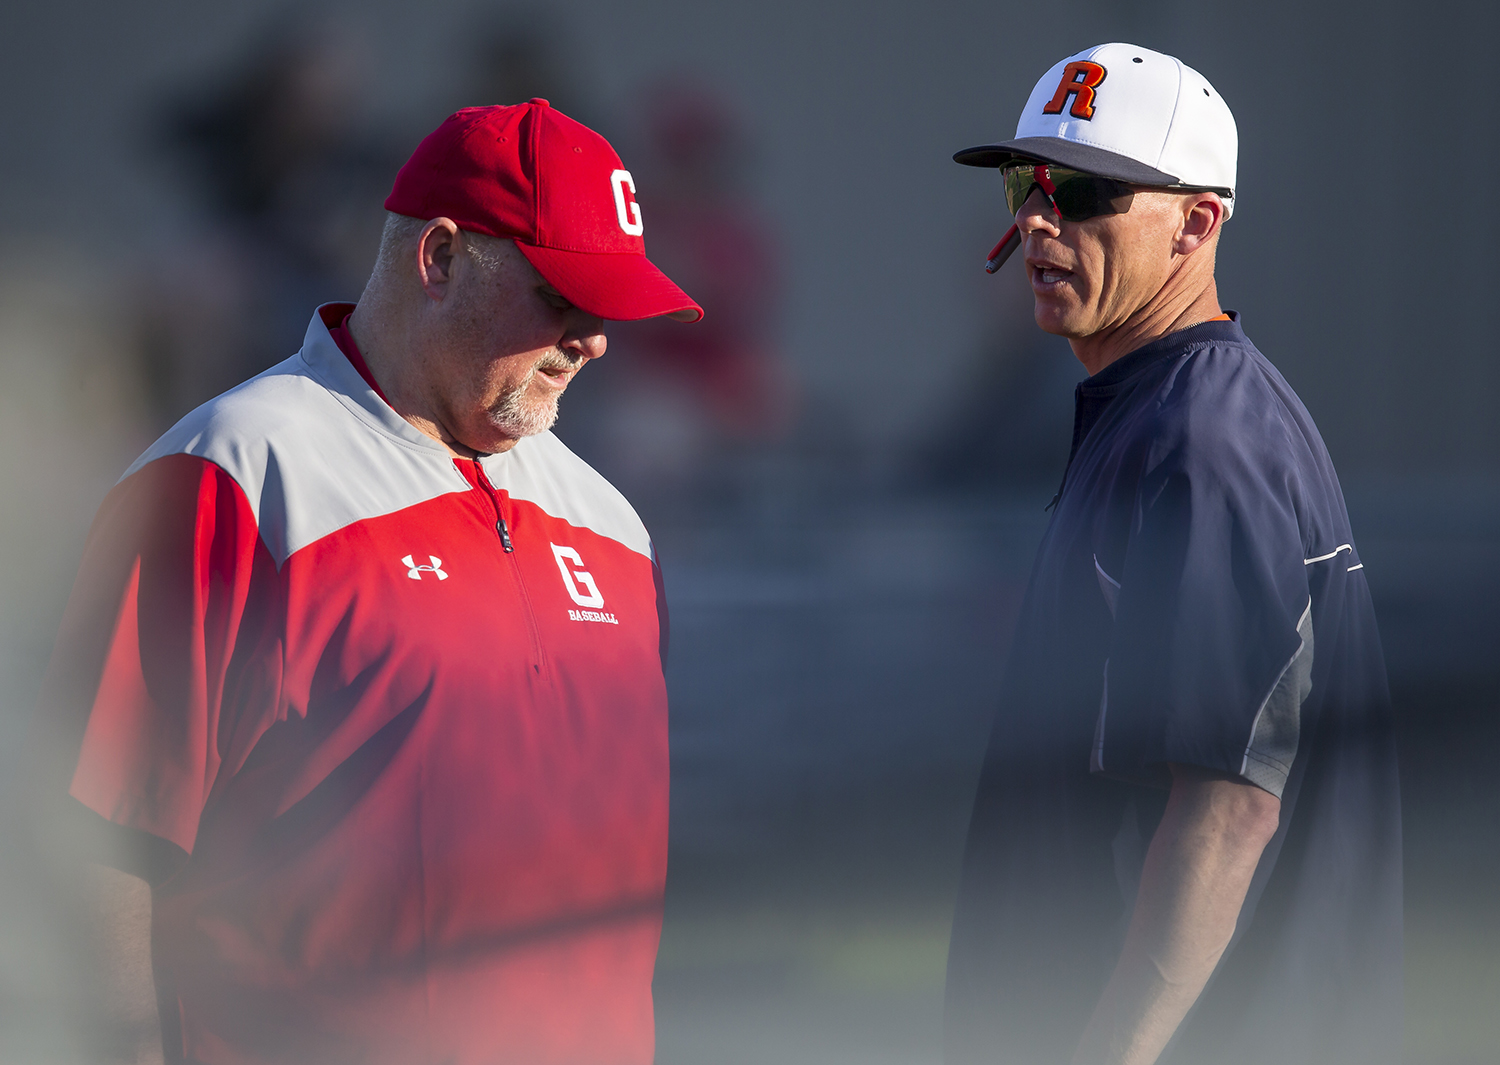 Rochester head coach Matt Carlson talks with Glenwood head coach Pat Moomey after the sixth inning at Rochester High School, Tuesday, April 16, 2019, in Rochester, Ill. [Justin L. Fowler/The State Journal-Register]